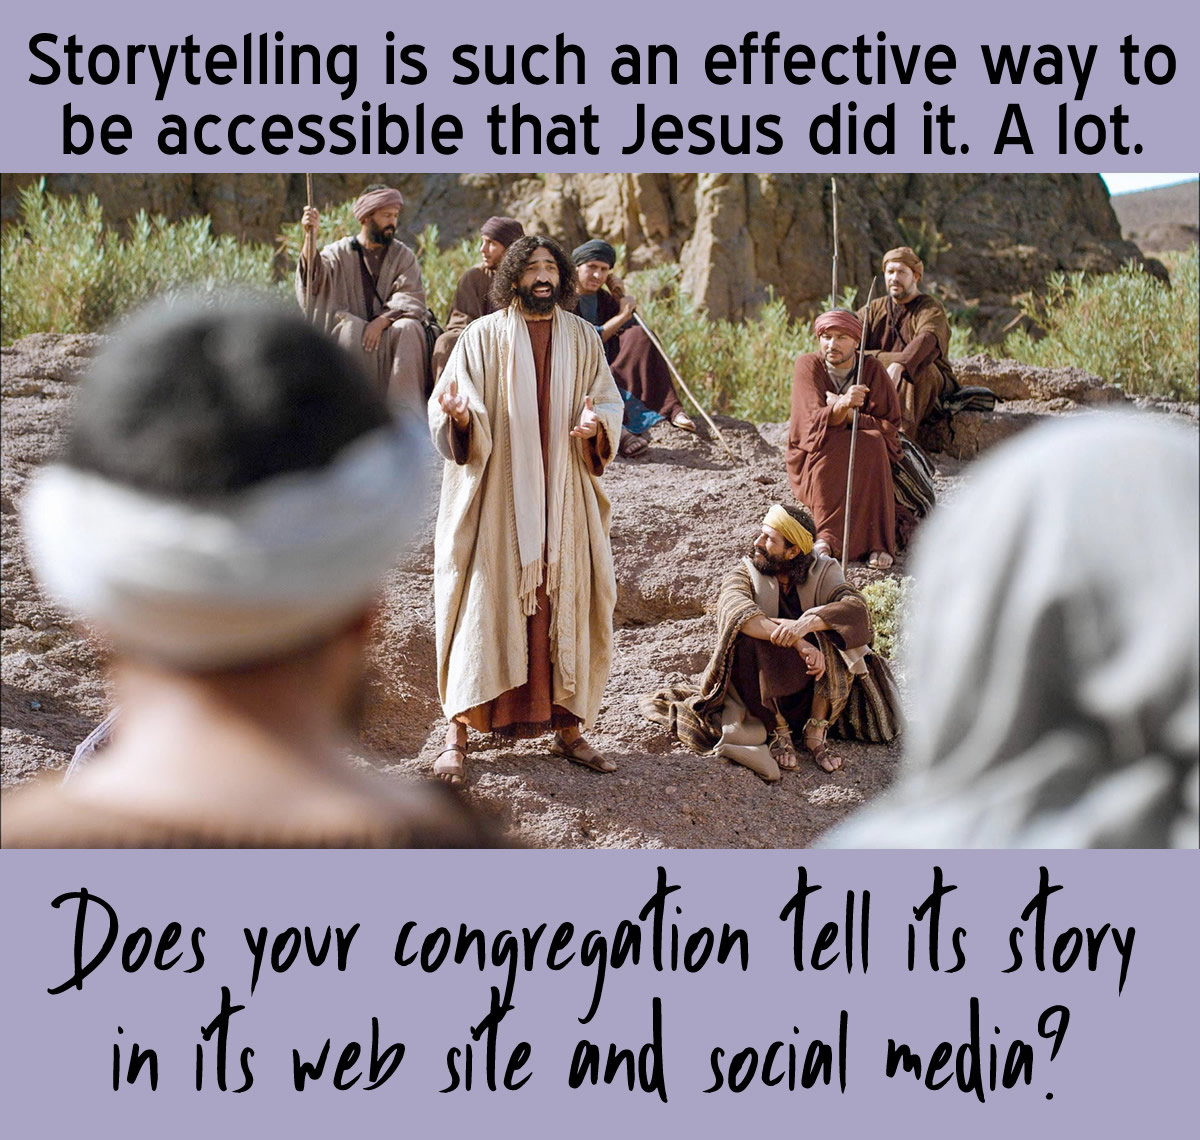 Storytelling is such an effective way to be accessible that Jesus did it. A lot.